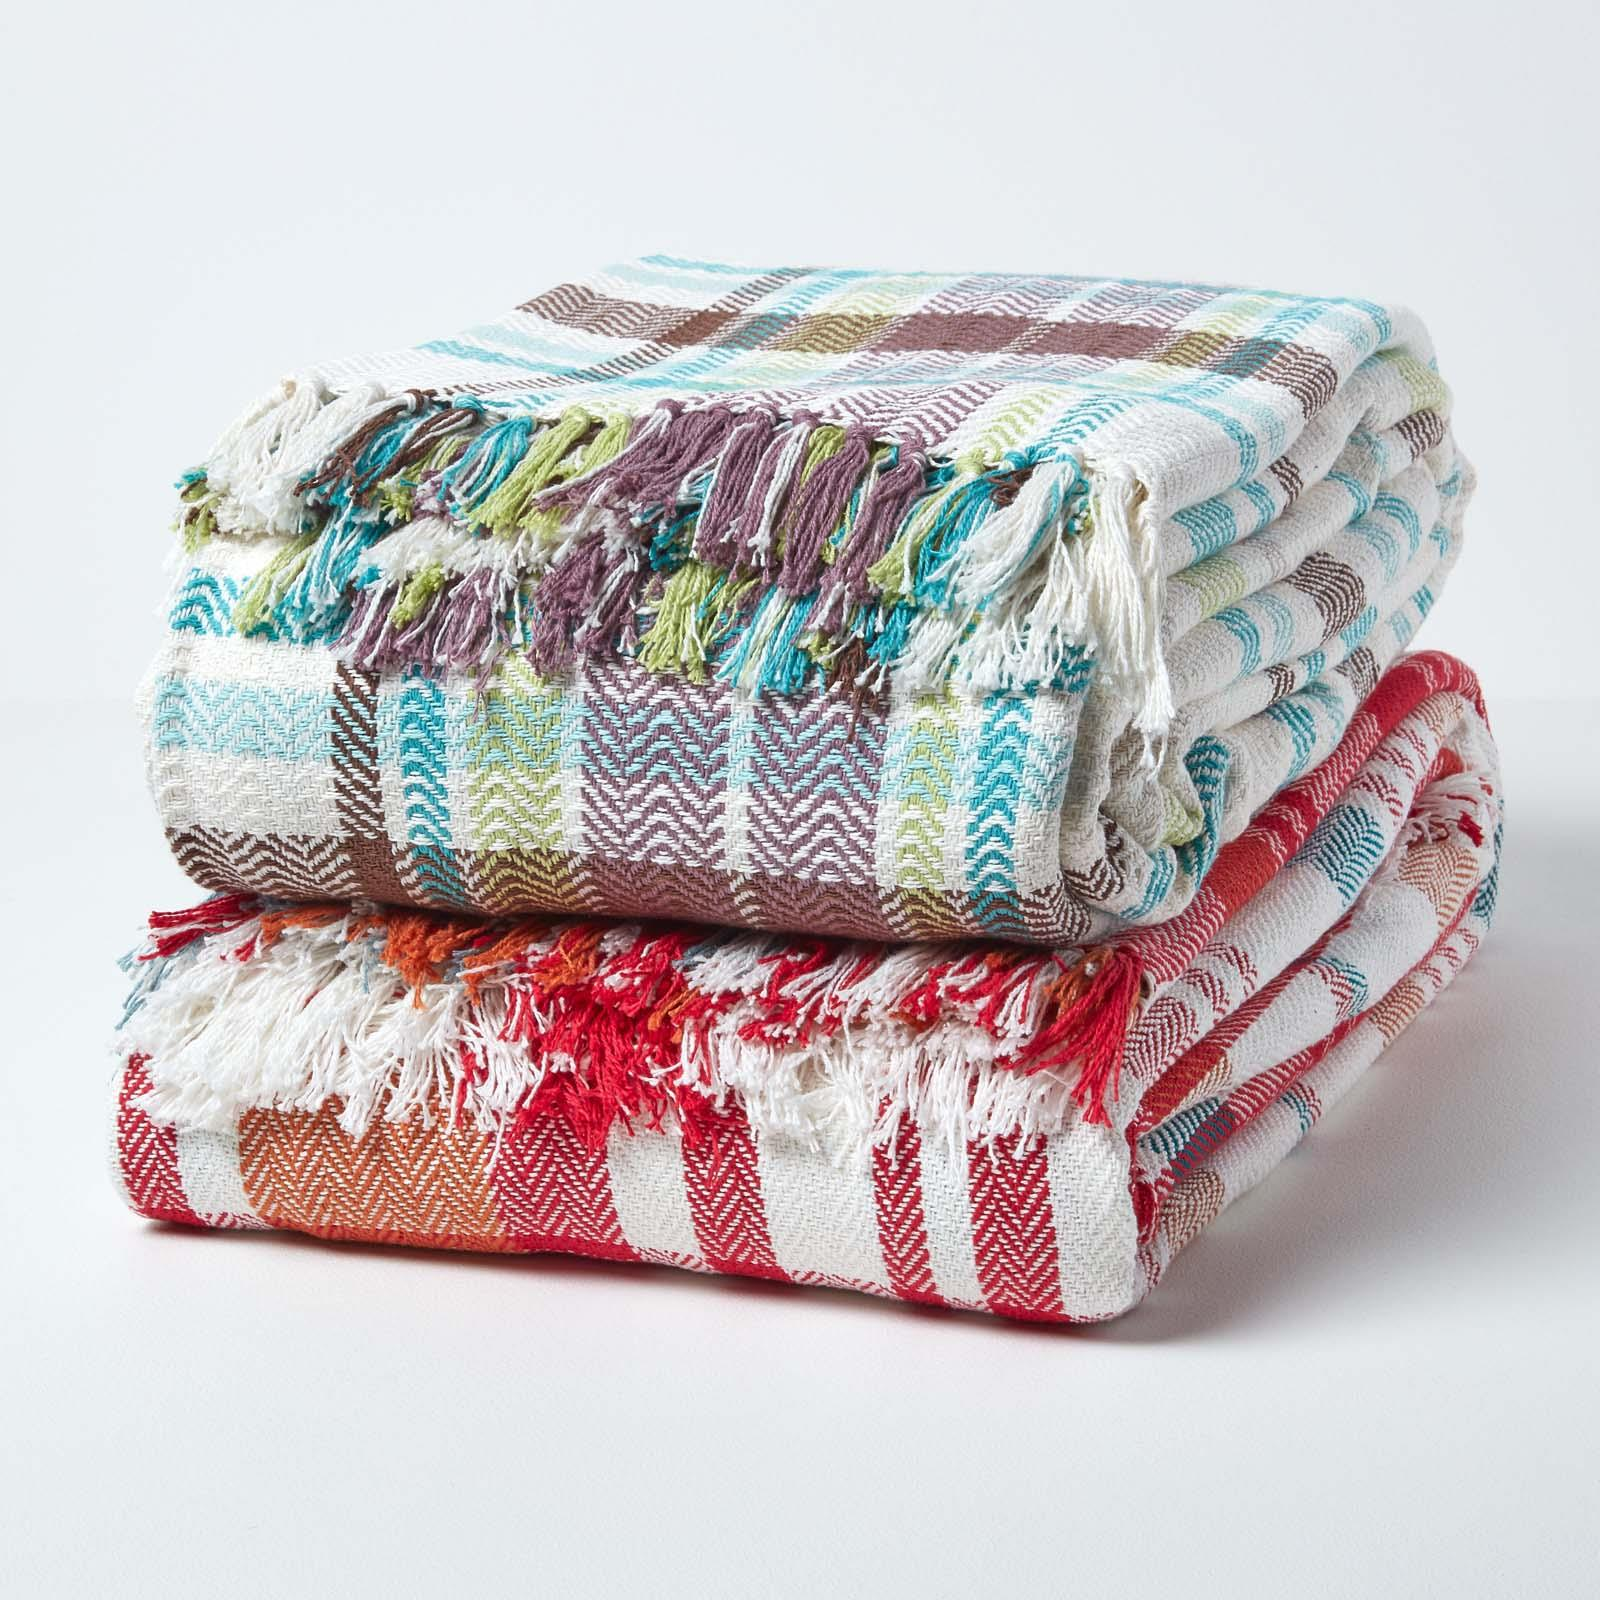 Details about Cotton Extra Large Tartan Throws for Sofas Bed Throw Blankets  Bedspreads